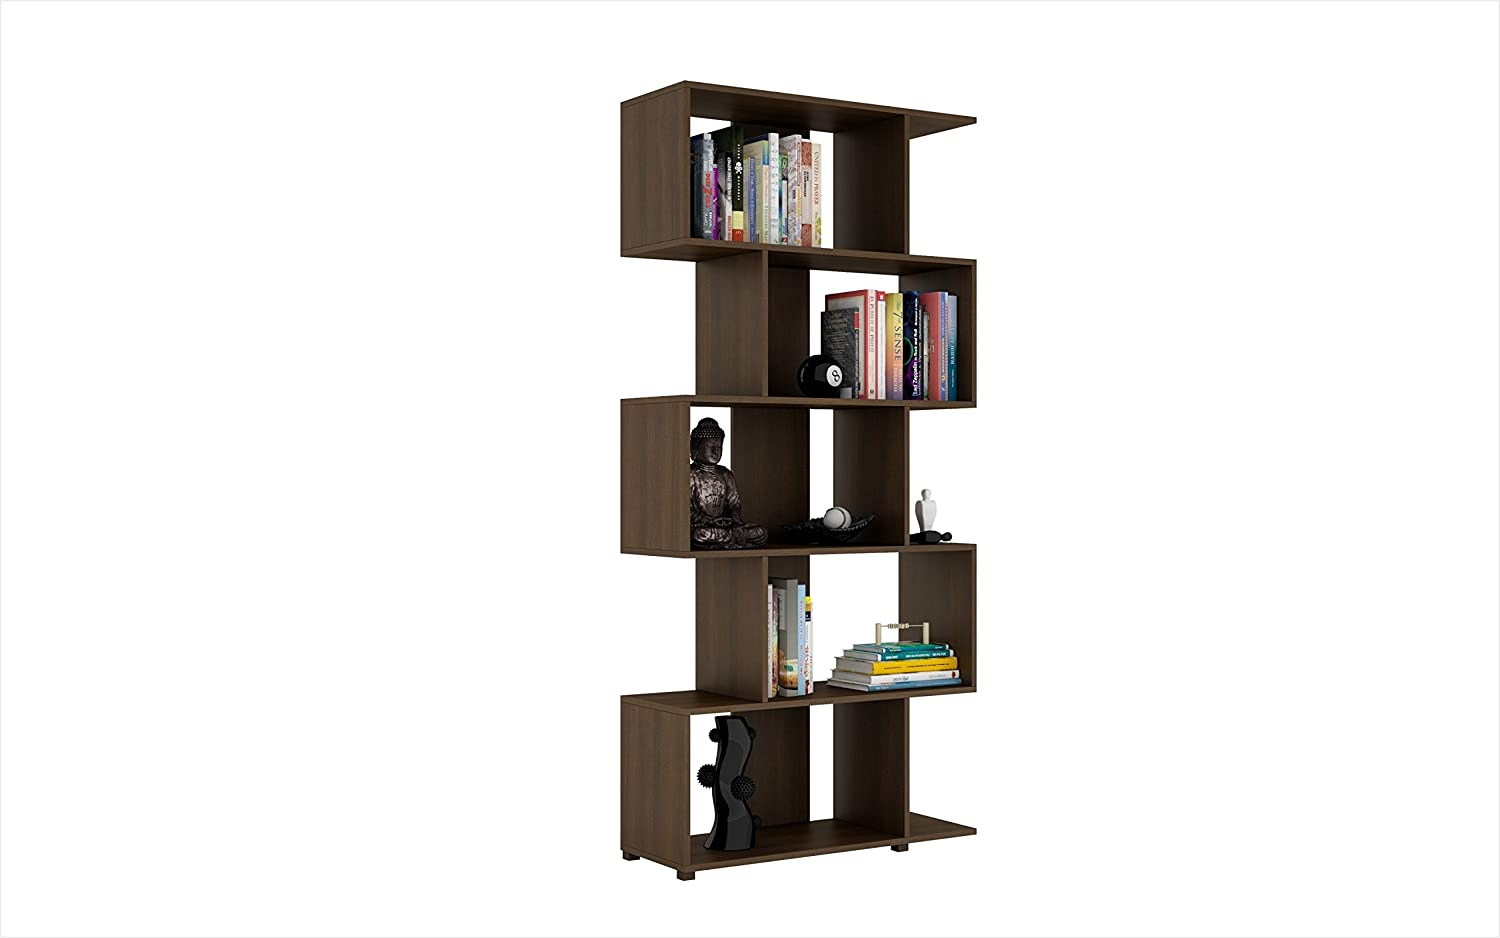 Manhattan Comfort Accentuations By Charming Petrolina Z-shelf With 5  Shelves In Tobacco